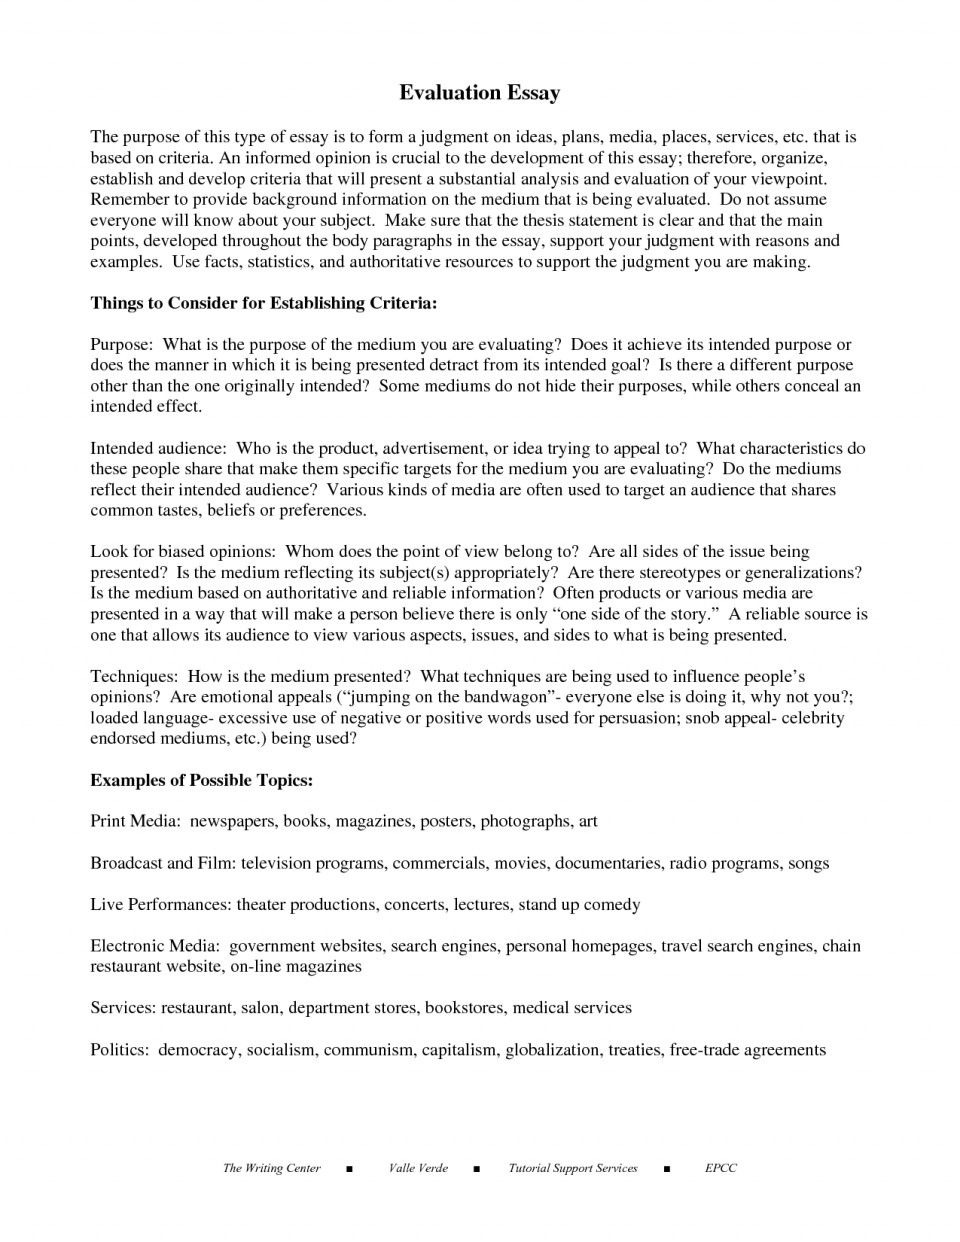 006 Essay Example Evaluation Resume Writing An Professional Incredible Book Samples On Movies Self Format 960